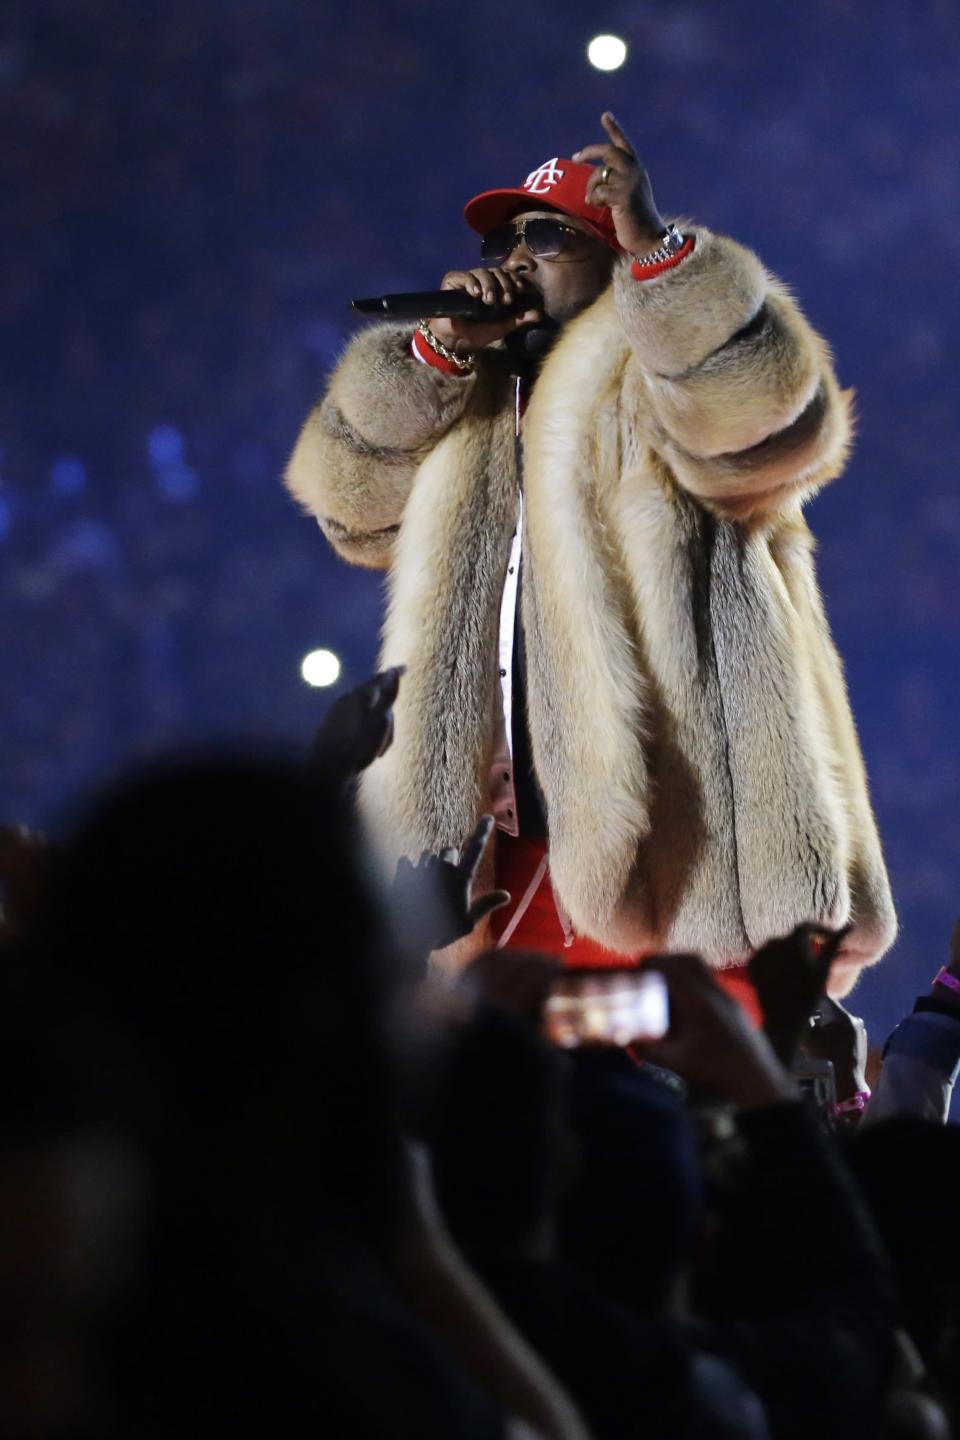 <p>Big Boi performs during halftime of the NFL Super Bowl 53 football game between the Los Angeles Rams and the New England Patriots Sunday, Feb. 3, 2019, in Atlanta. (AP Photo/Mark Humphrey) </p>